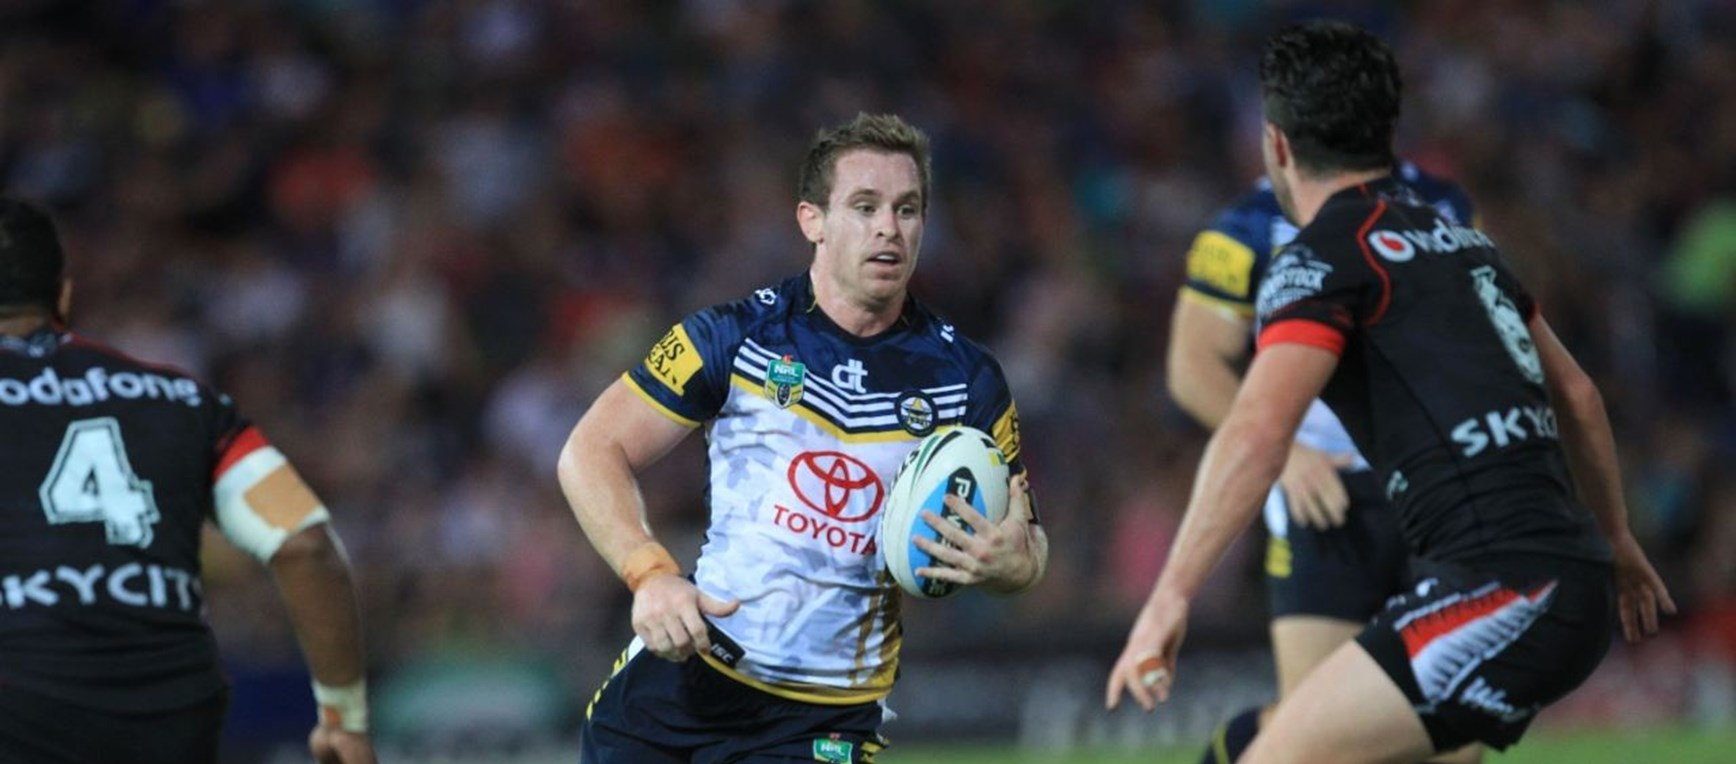 Gallery | Cowboys v Warriors